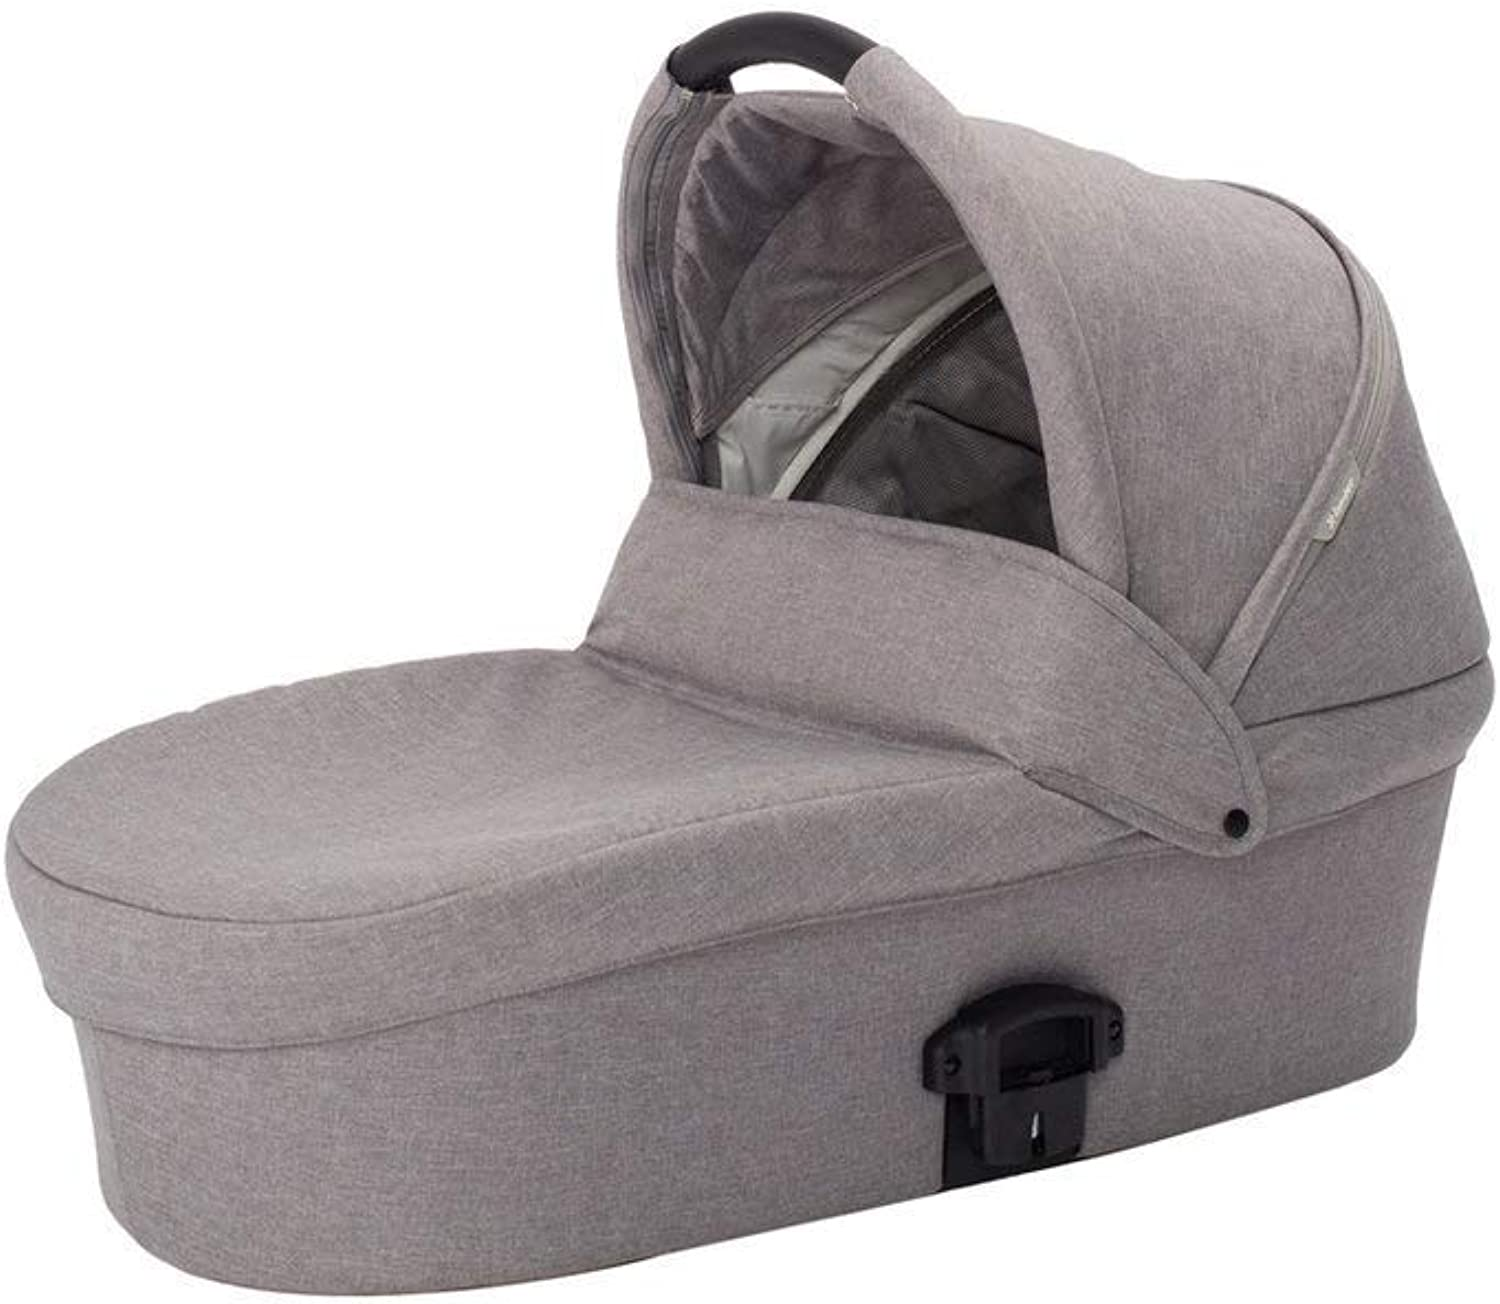 X-Lander X-Pram Light Bassinet, Evening Grey